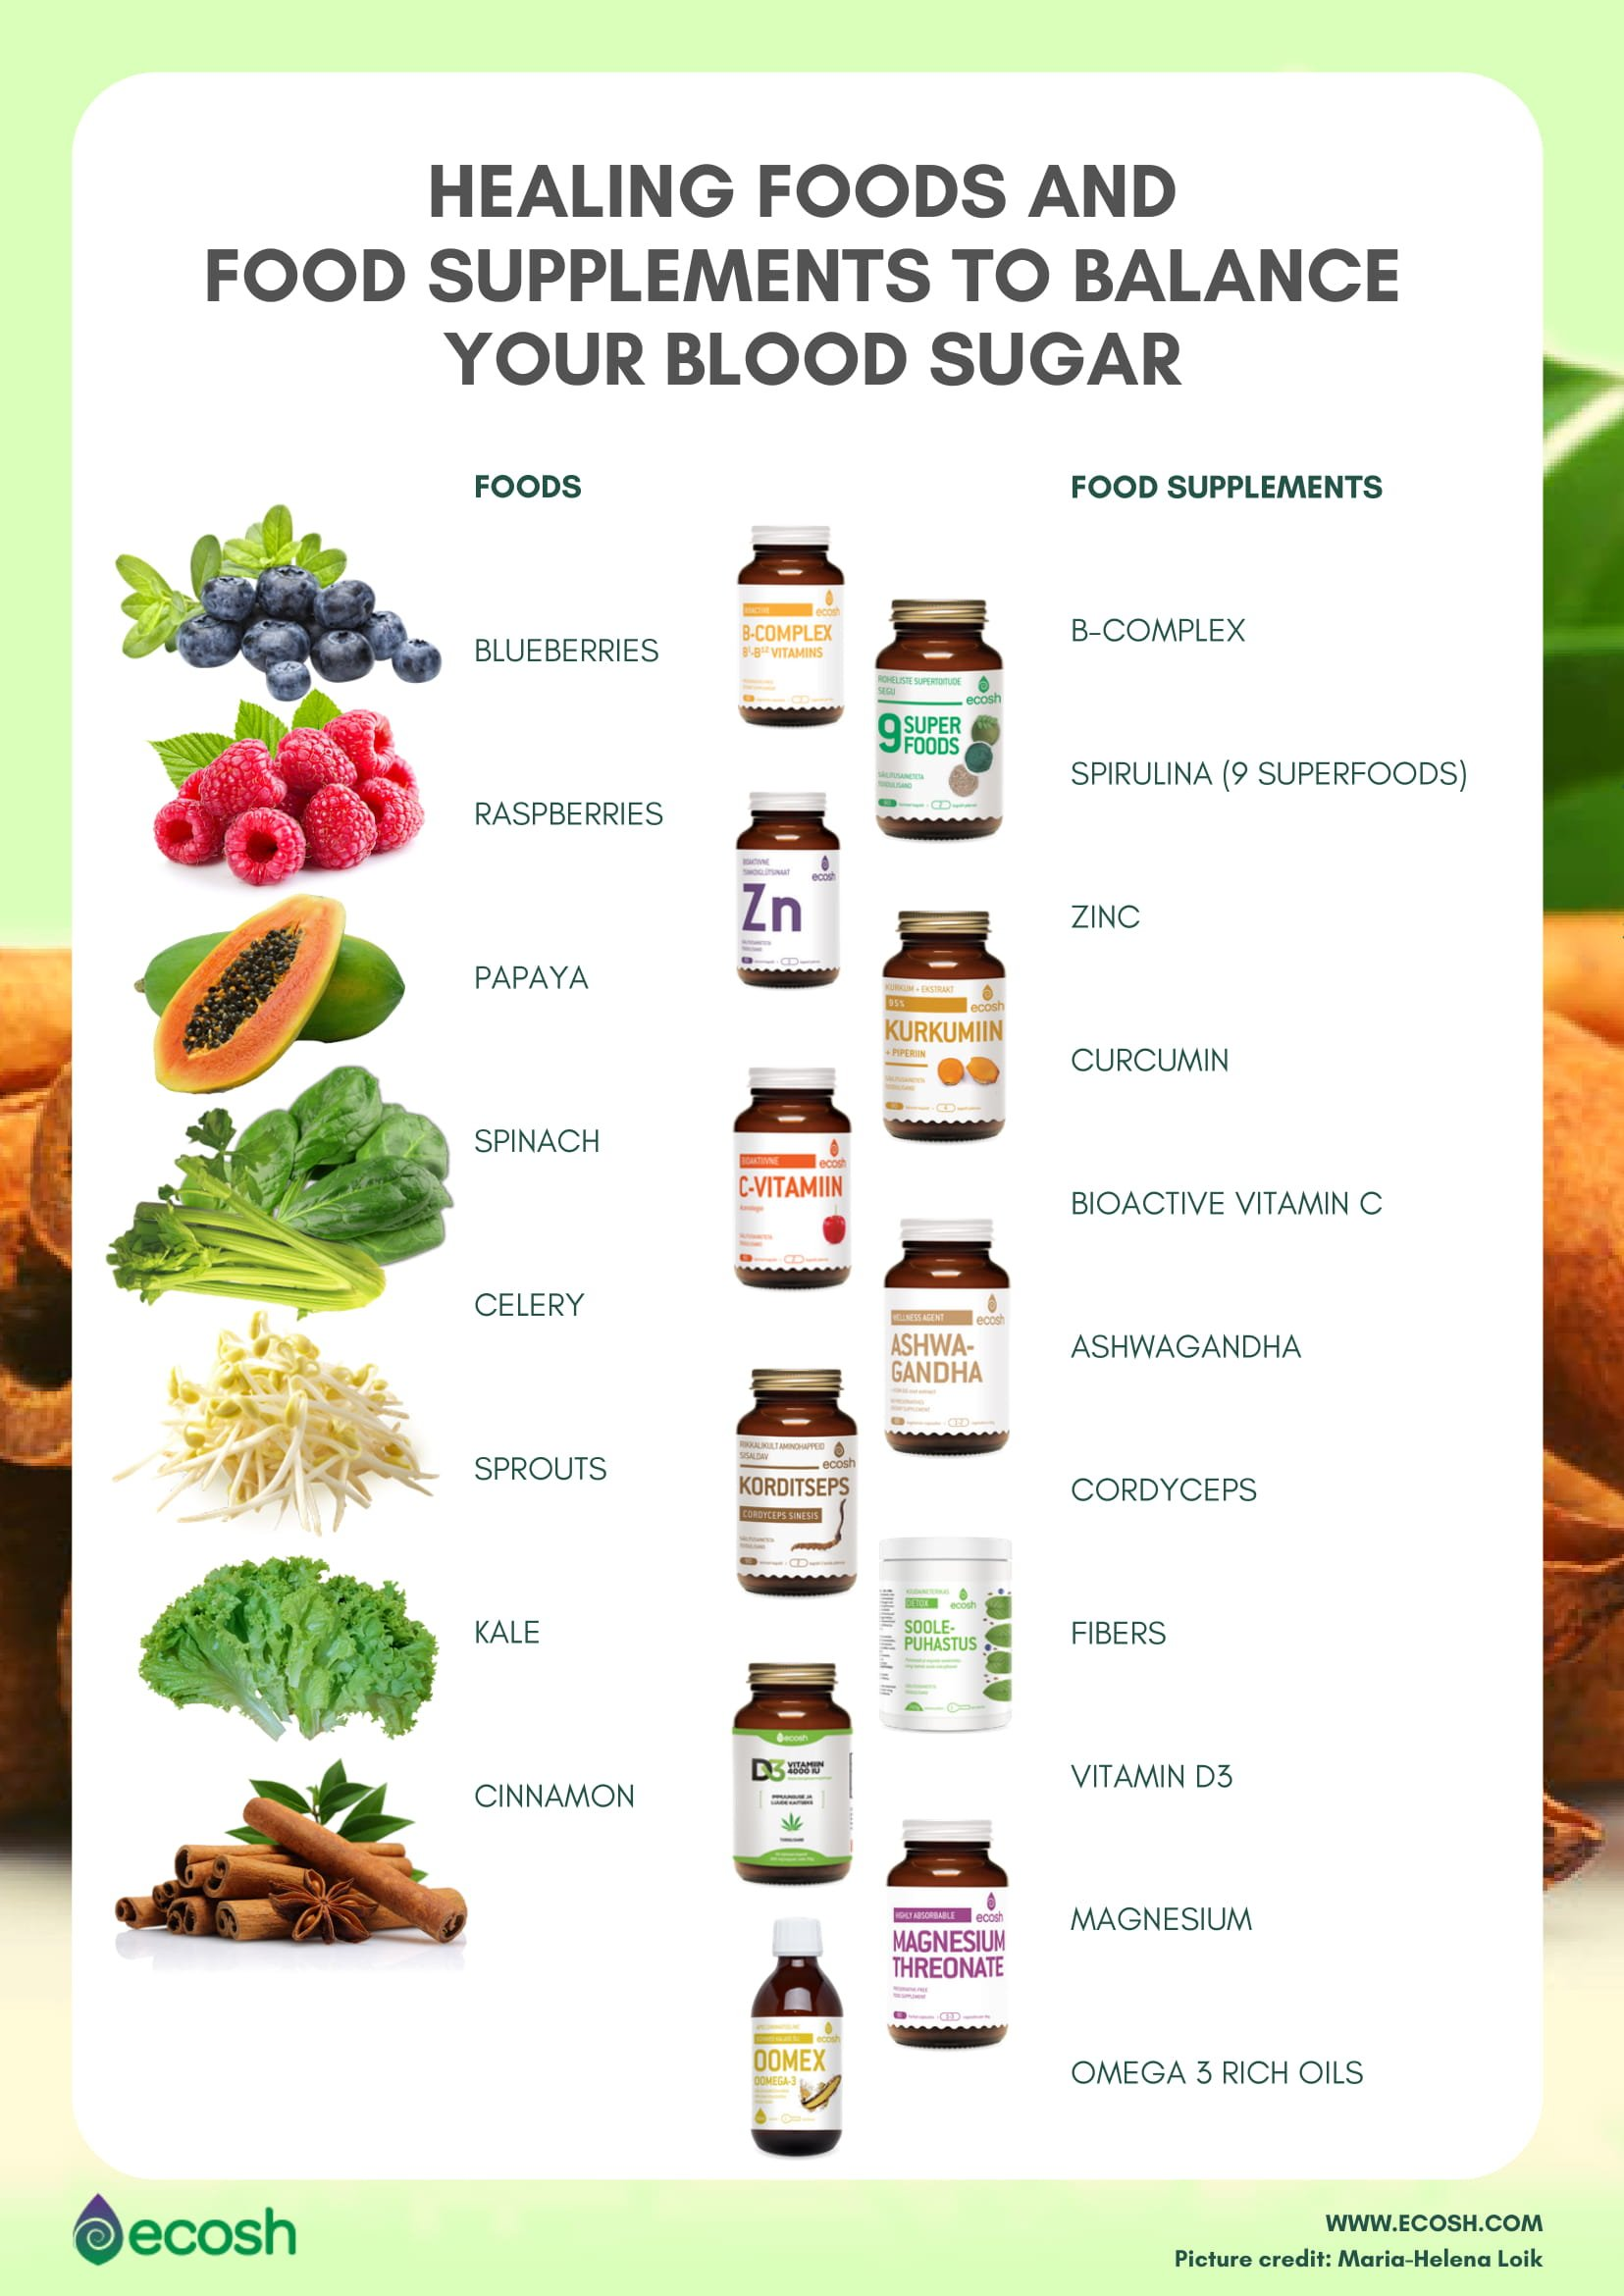 How To Reduce Blood Sugar?